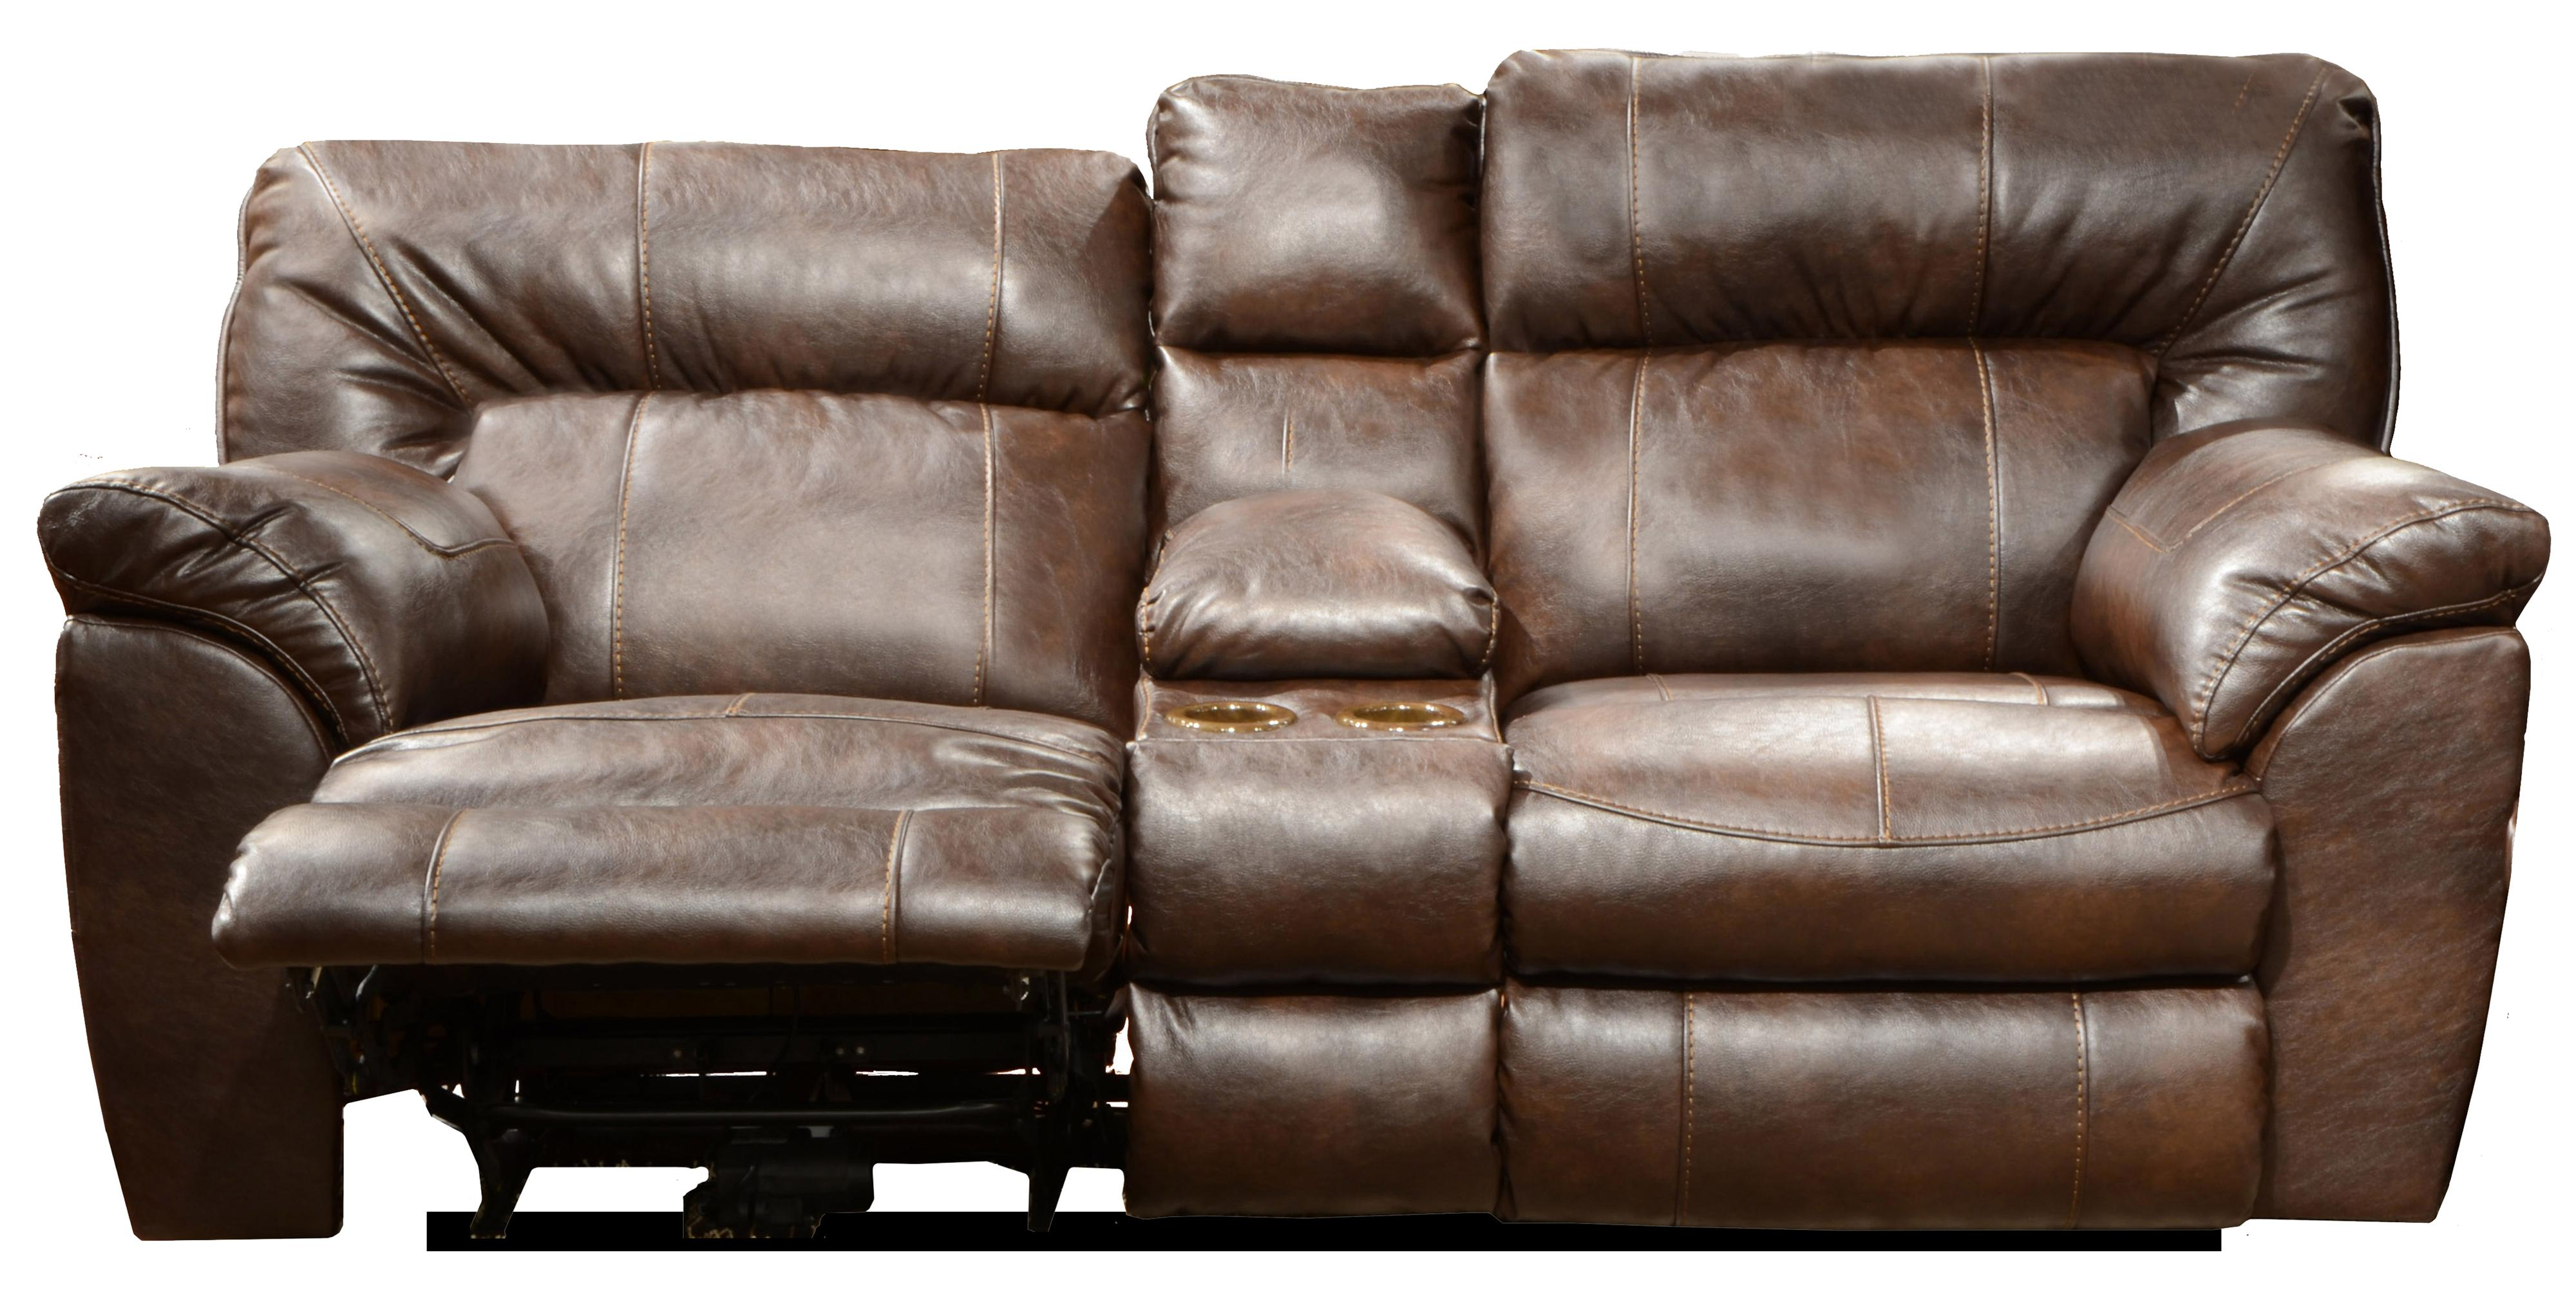 catnapper sofas and loveseats kincaid furniture sofa reviews nolan extra wide reclining console loveseat with storage cup holders